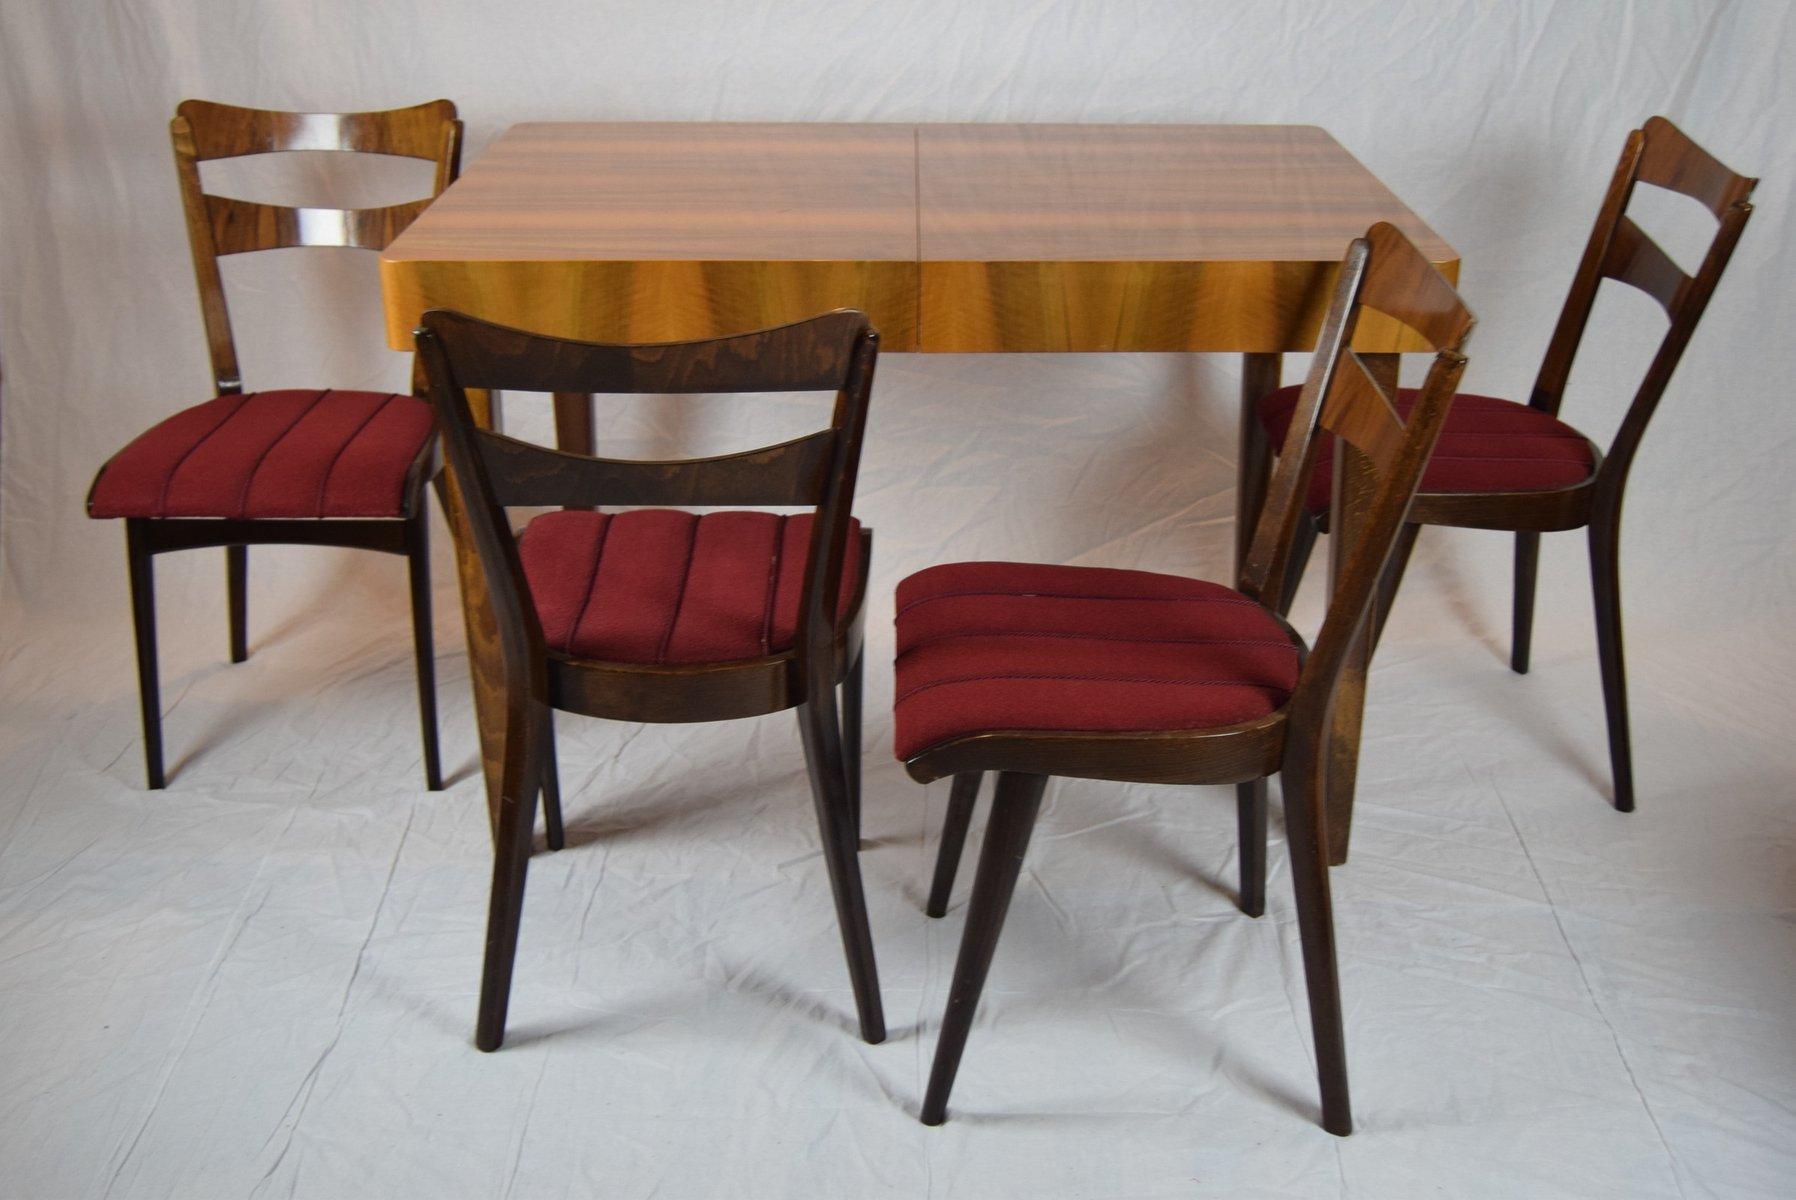 Teak Dining Table Four Chairs 1960s For Sale At Pamono